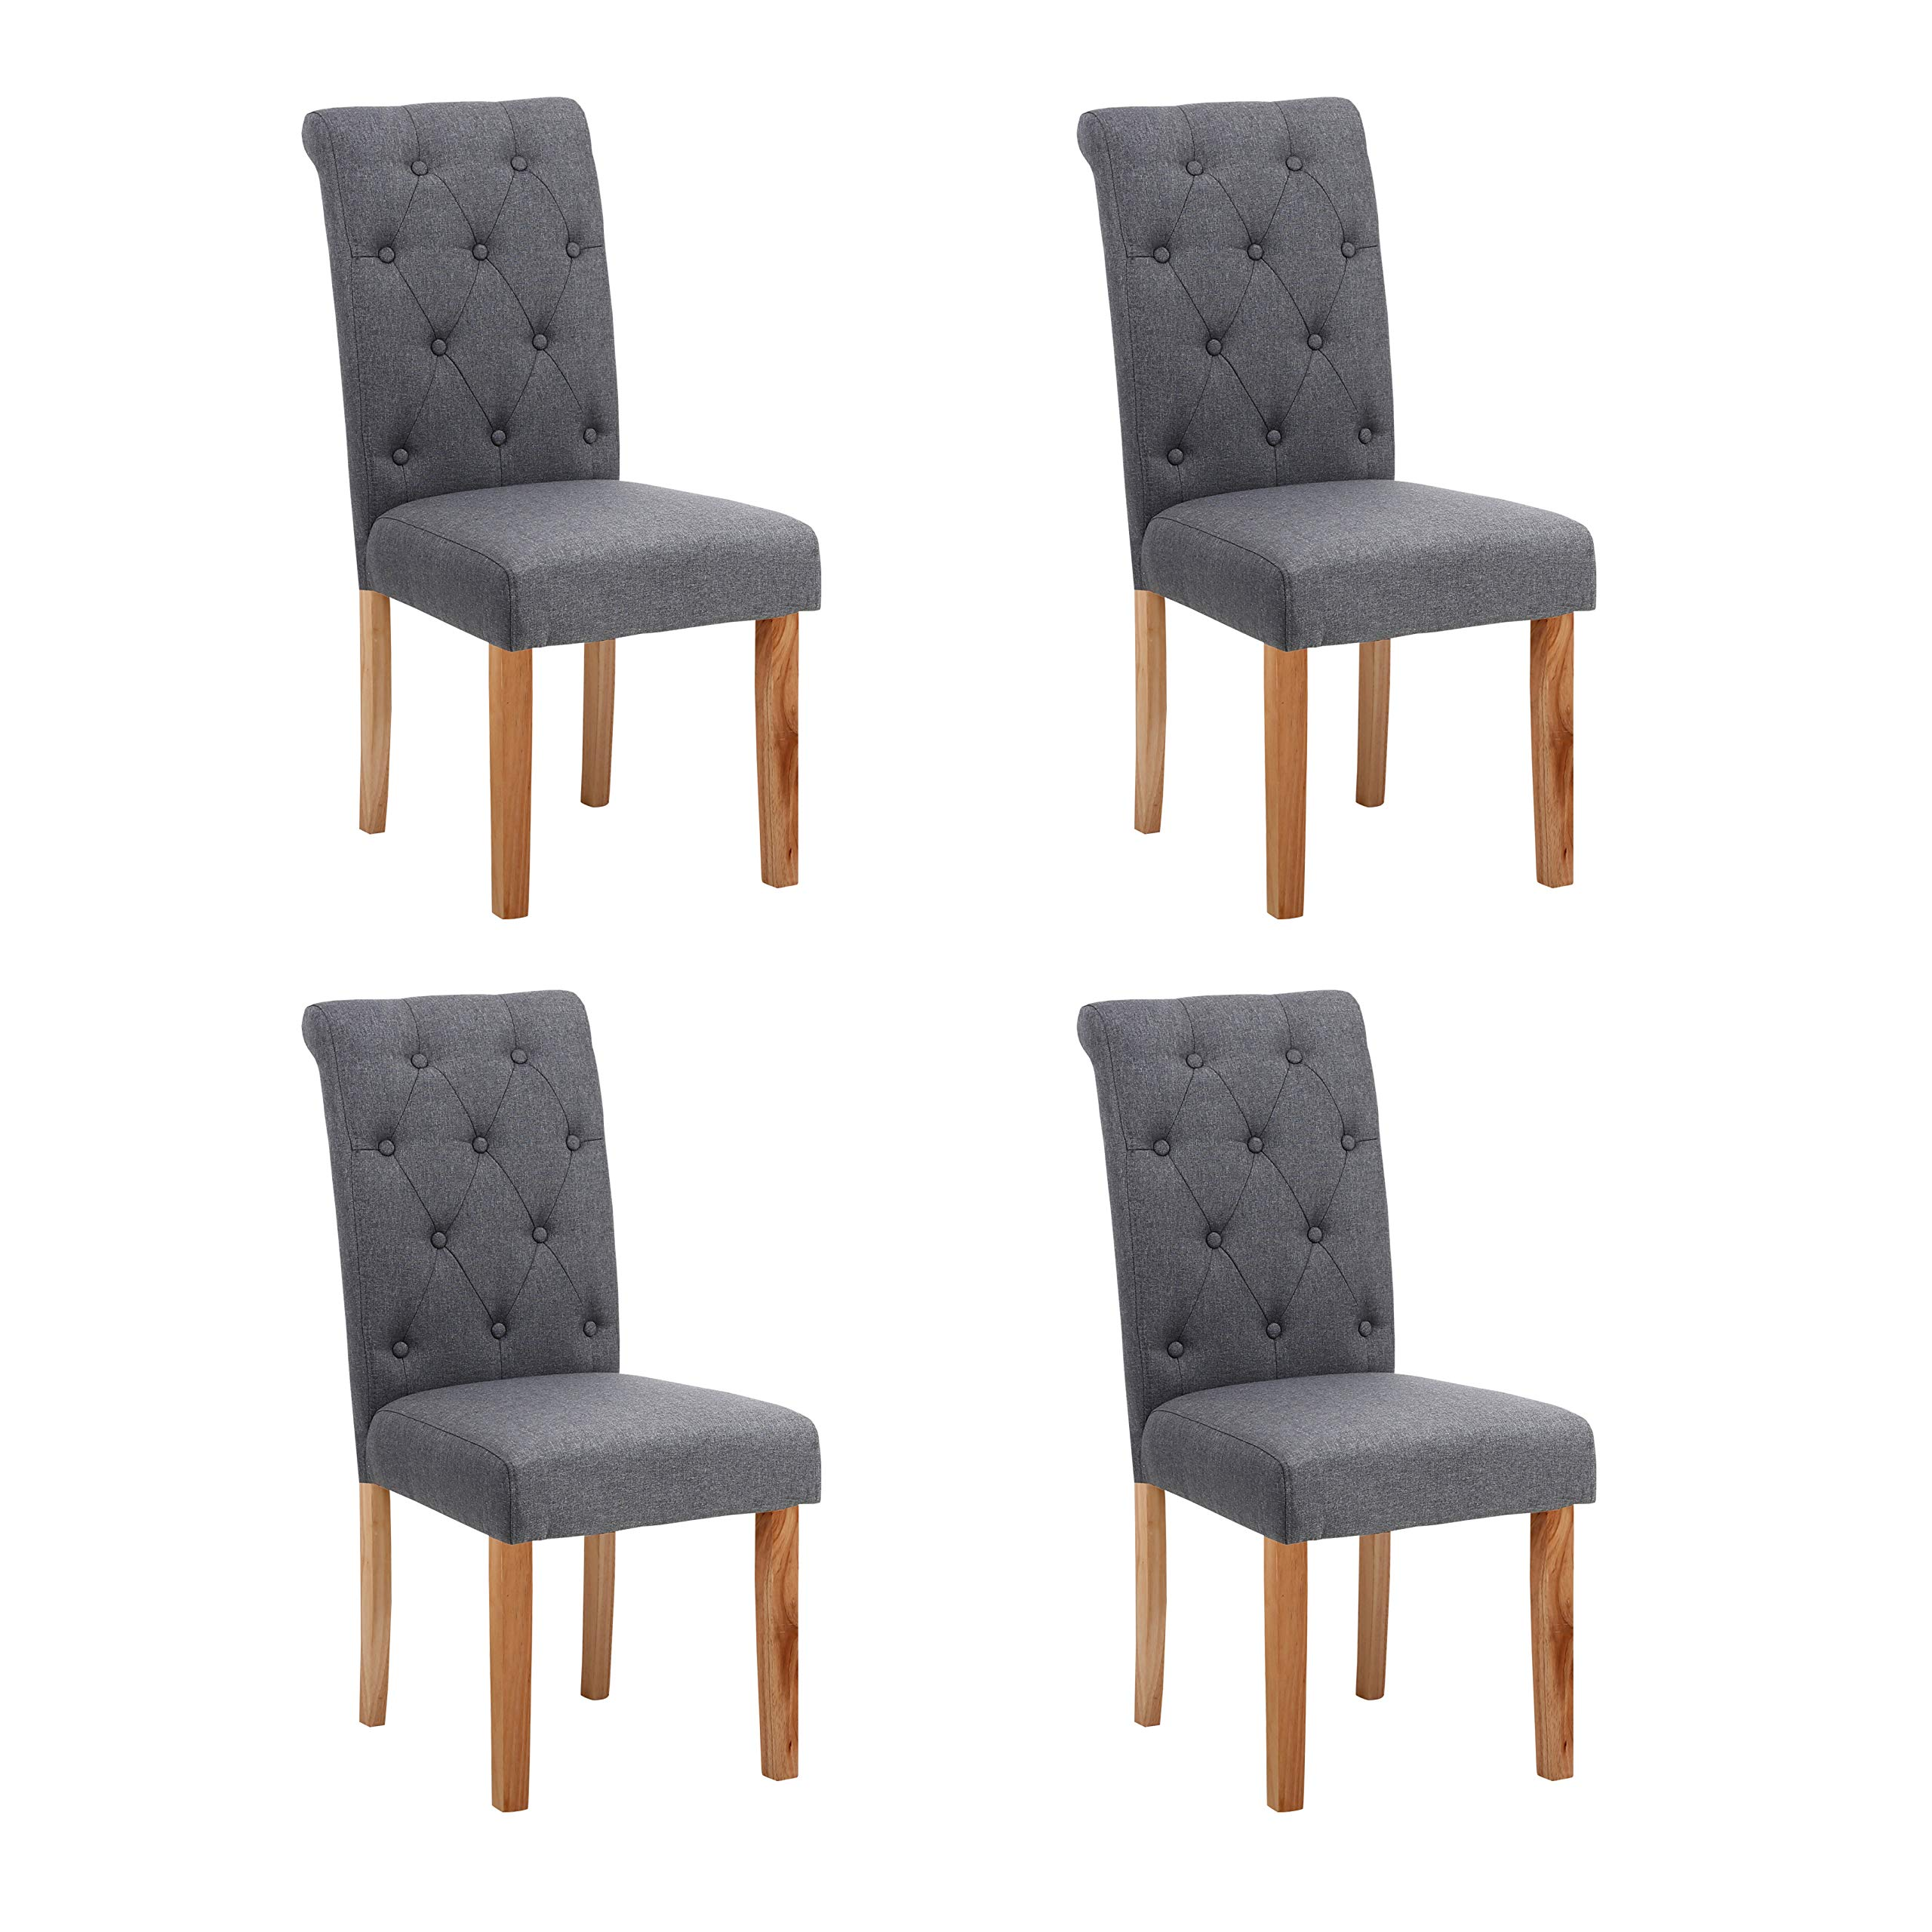 Neo 4x Fabric Button High Back Roll Top Seat Dining Room Chairs Set Wooden Oak Legs Dark Grey Buy Online In Isle Of Man At Isleofman Desertcart Com Productid 162318993